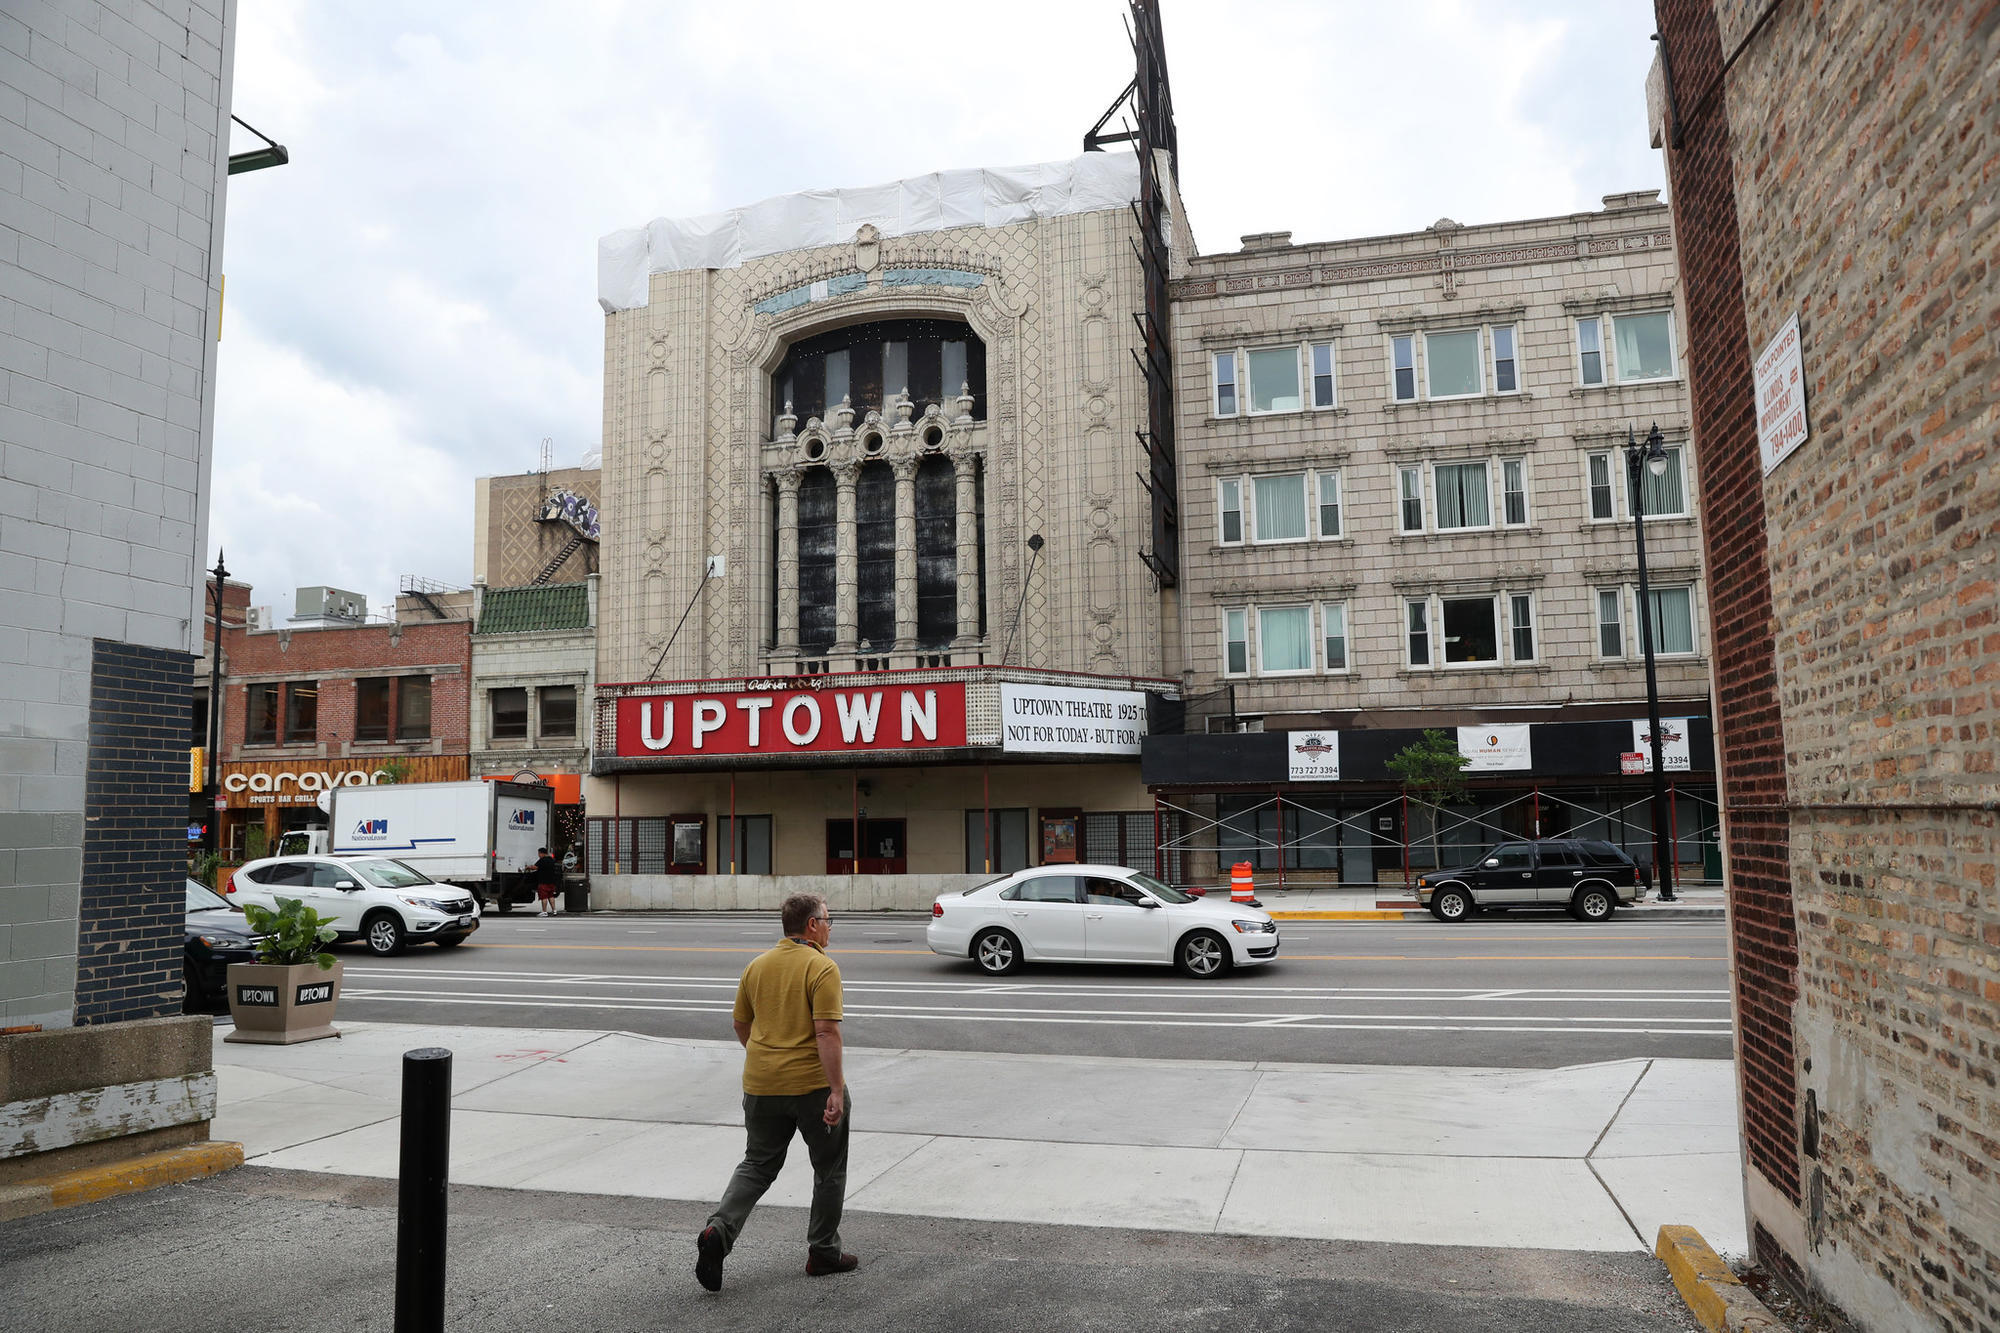 Uptown Events This Weekend! (July 28th-30th) - Uptown